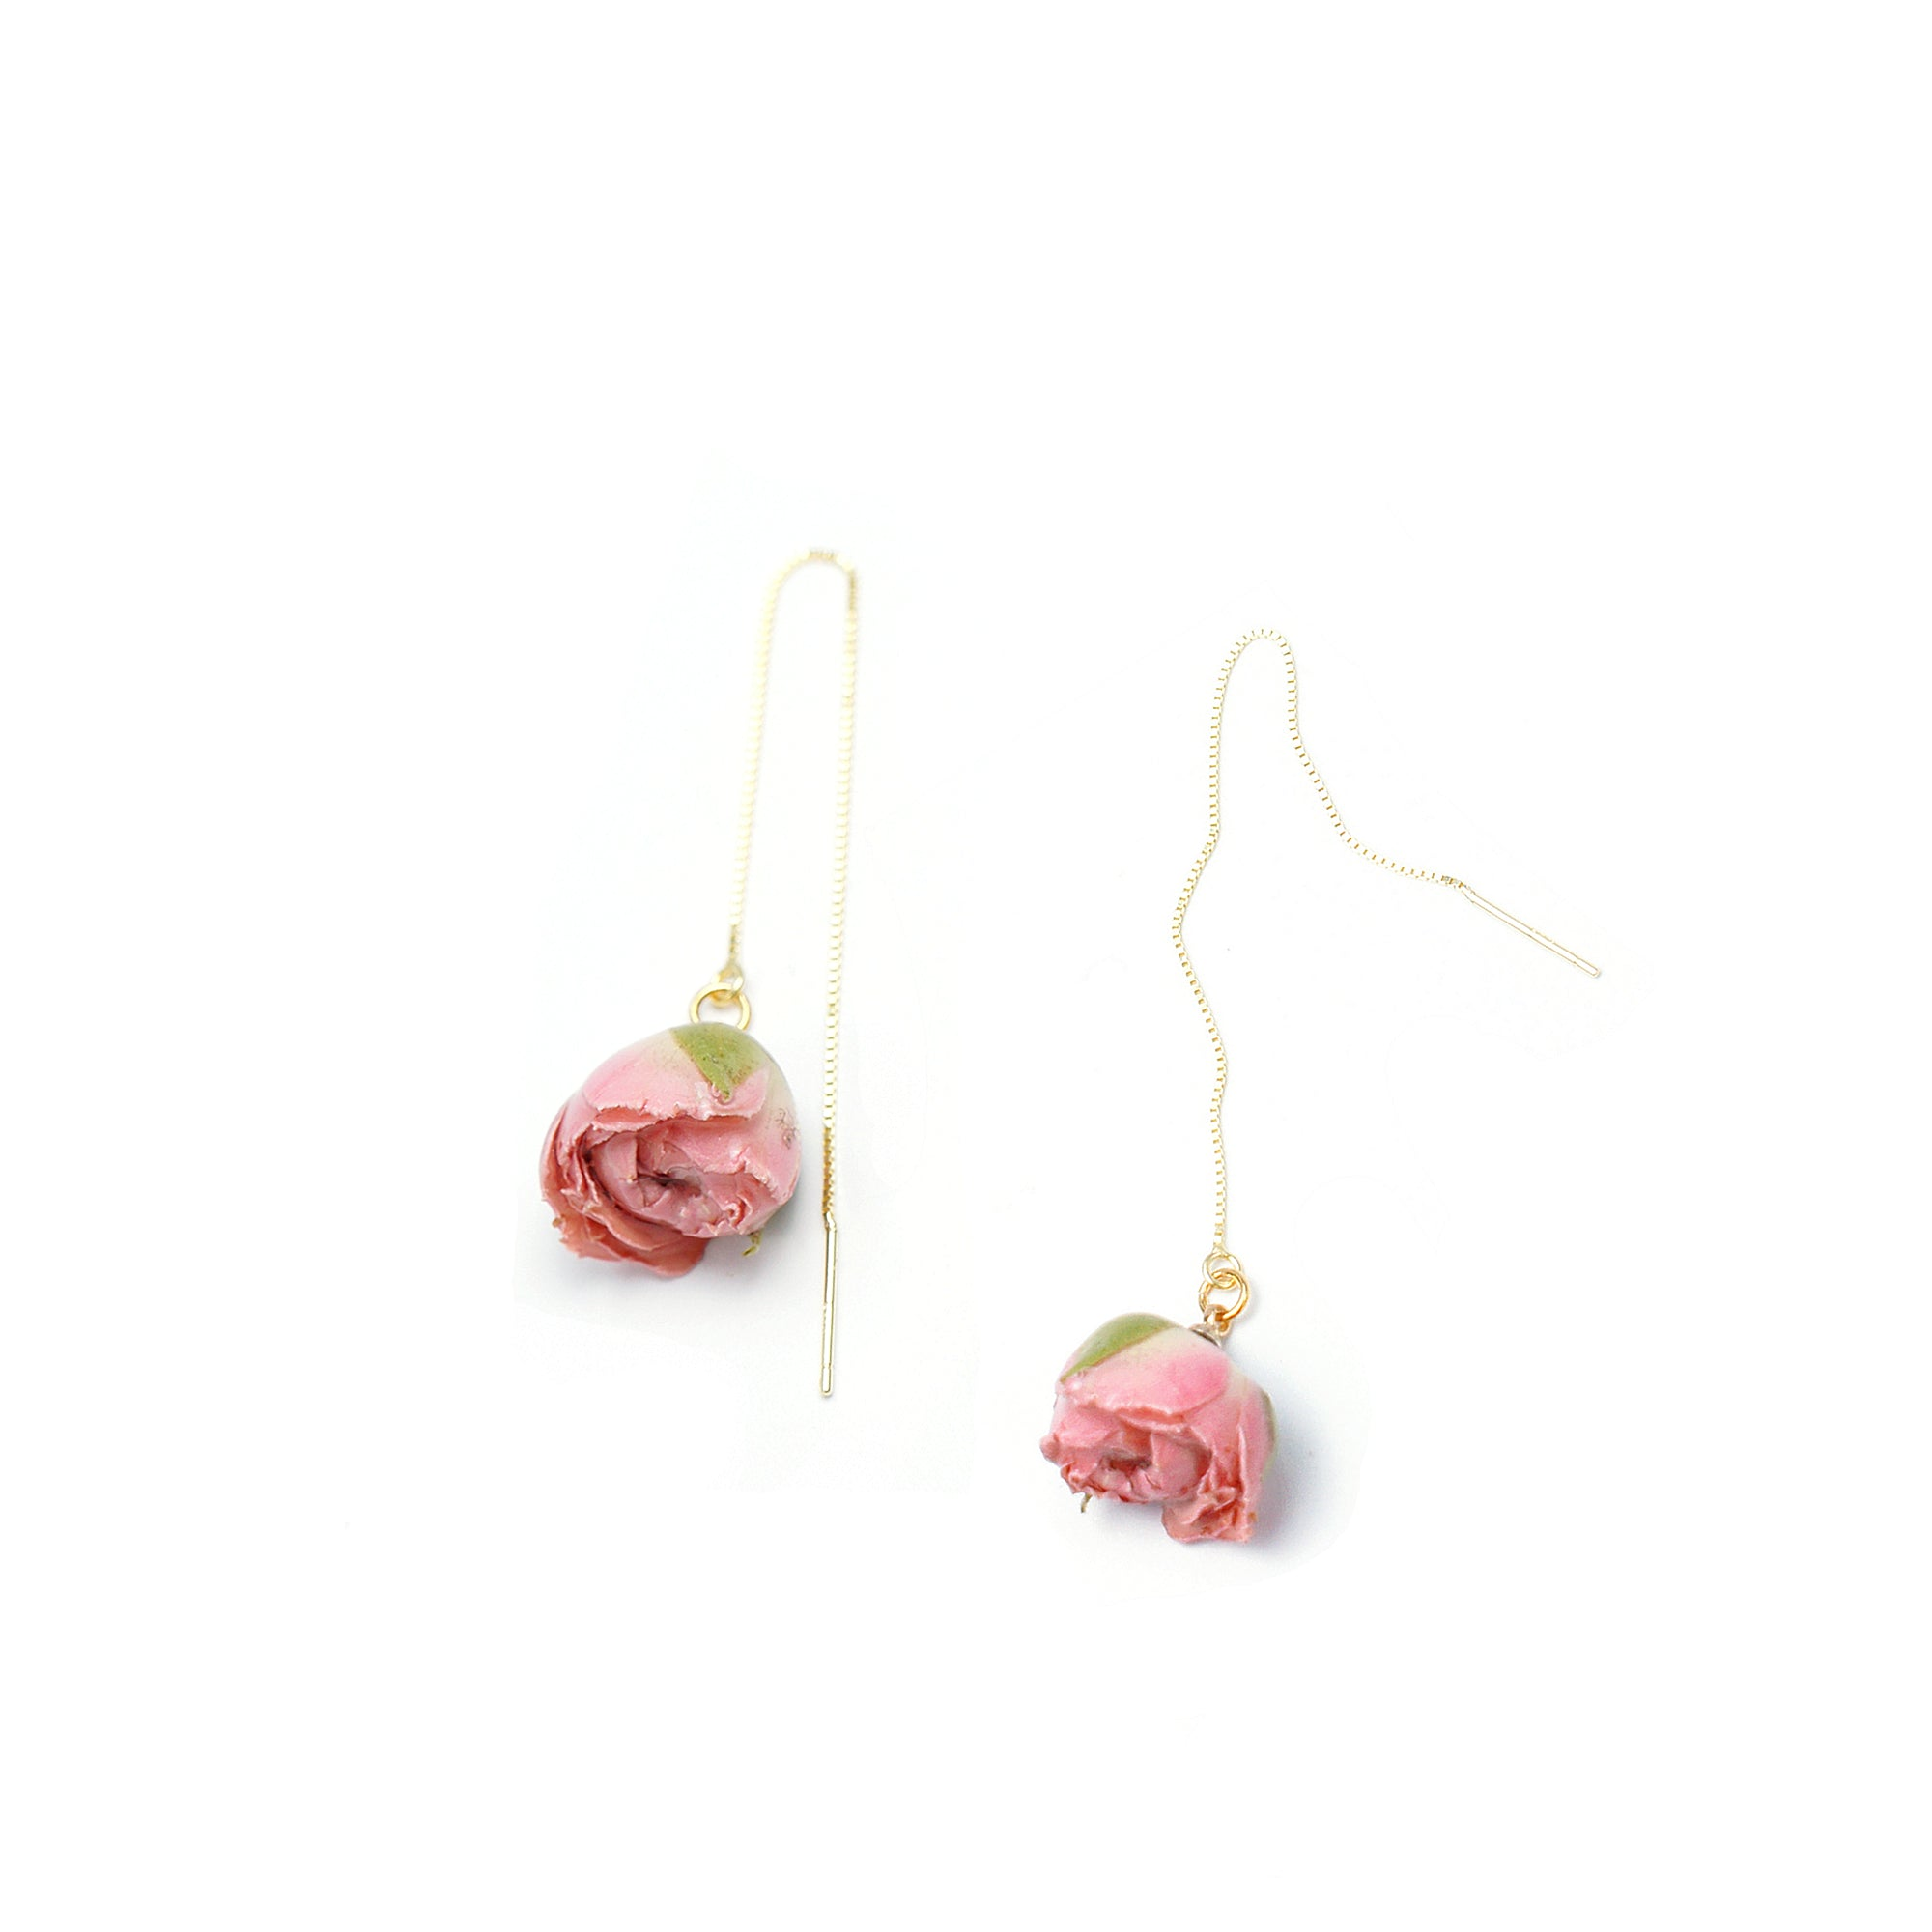 *REAL FLOWER* Bella Rosa Pink Rosebud 18k Gold Vermeil Threader Earrings